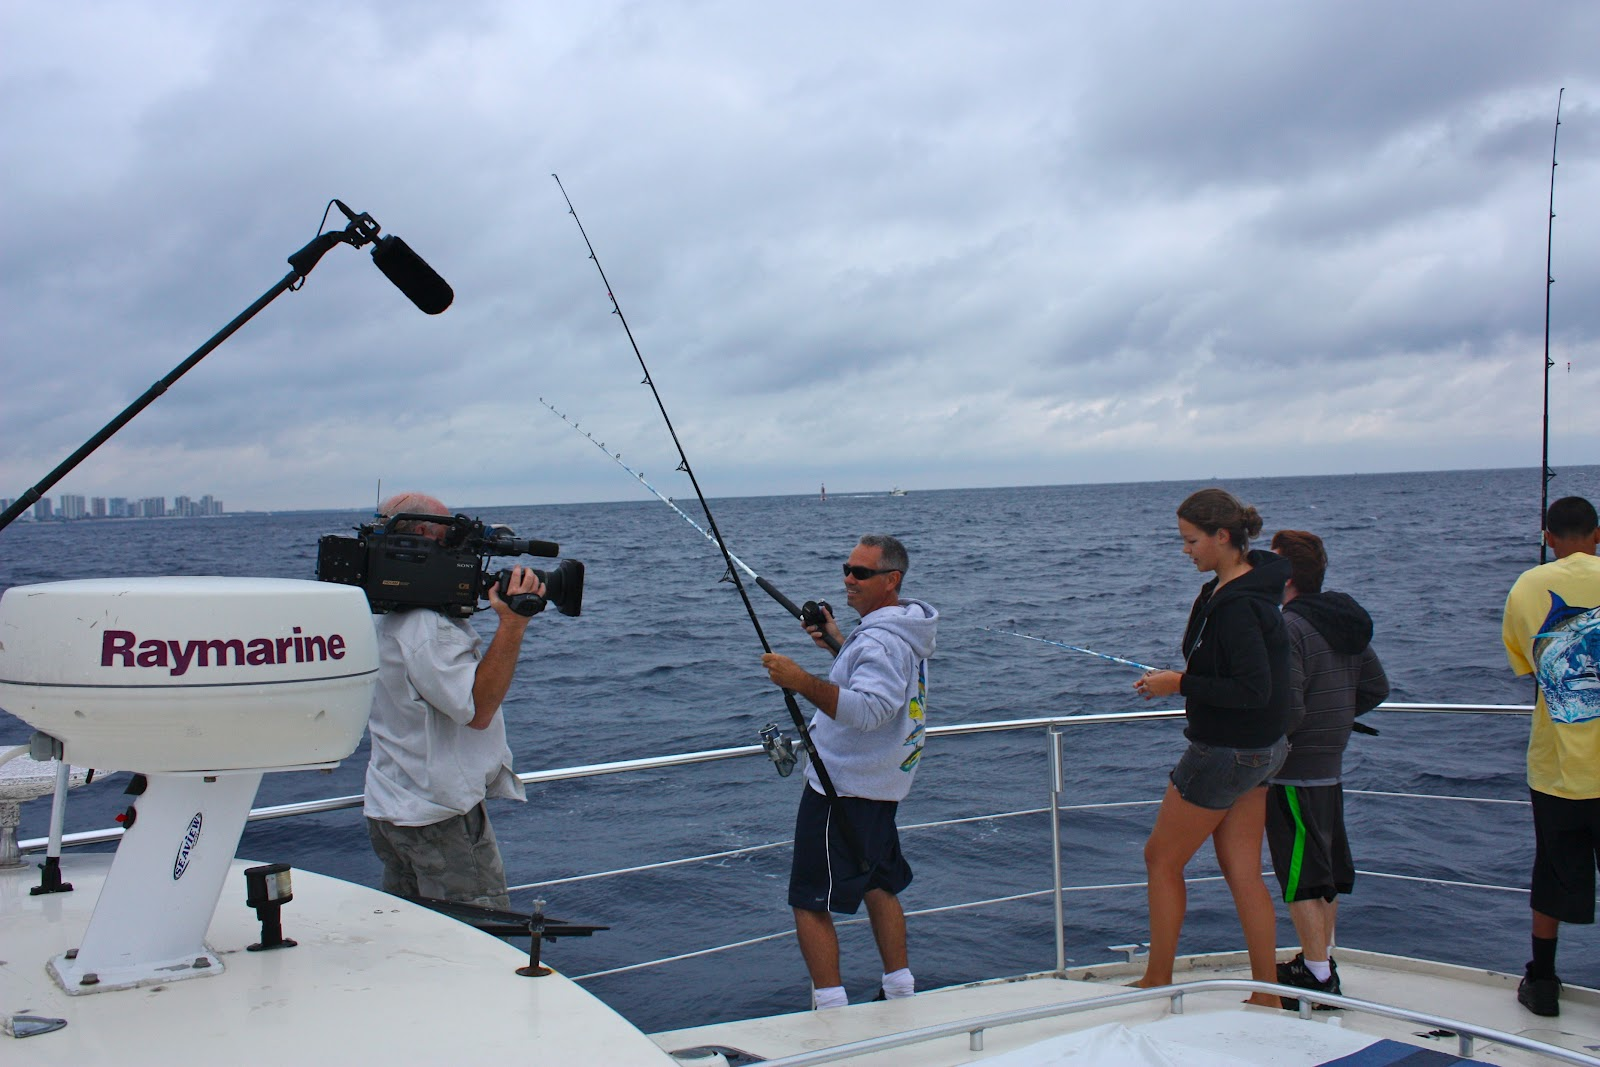 Florida fishing academy nbc filming and saturday fishing for Academy fishing poles